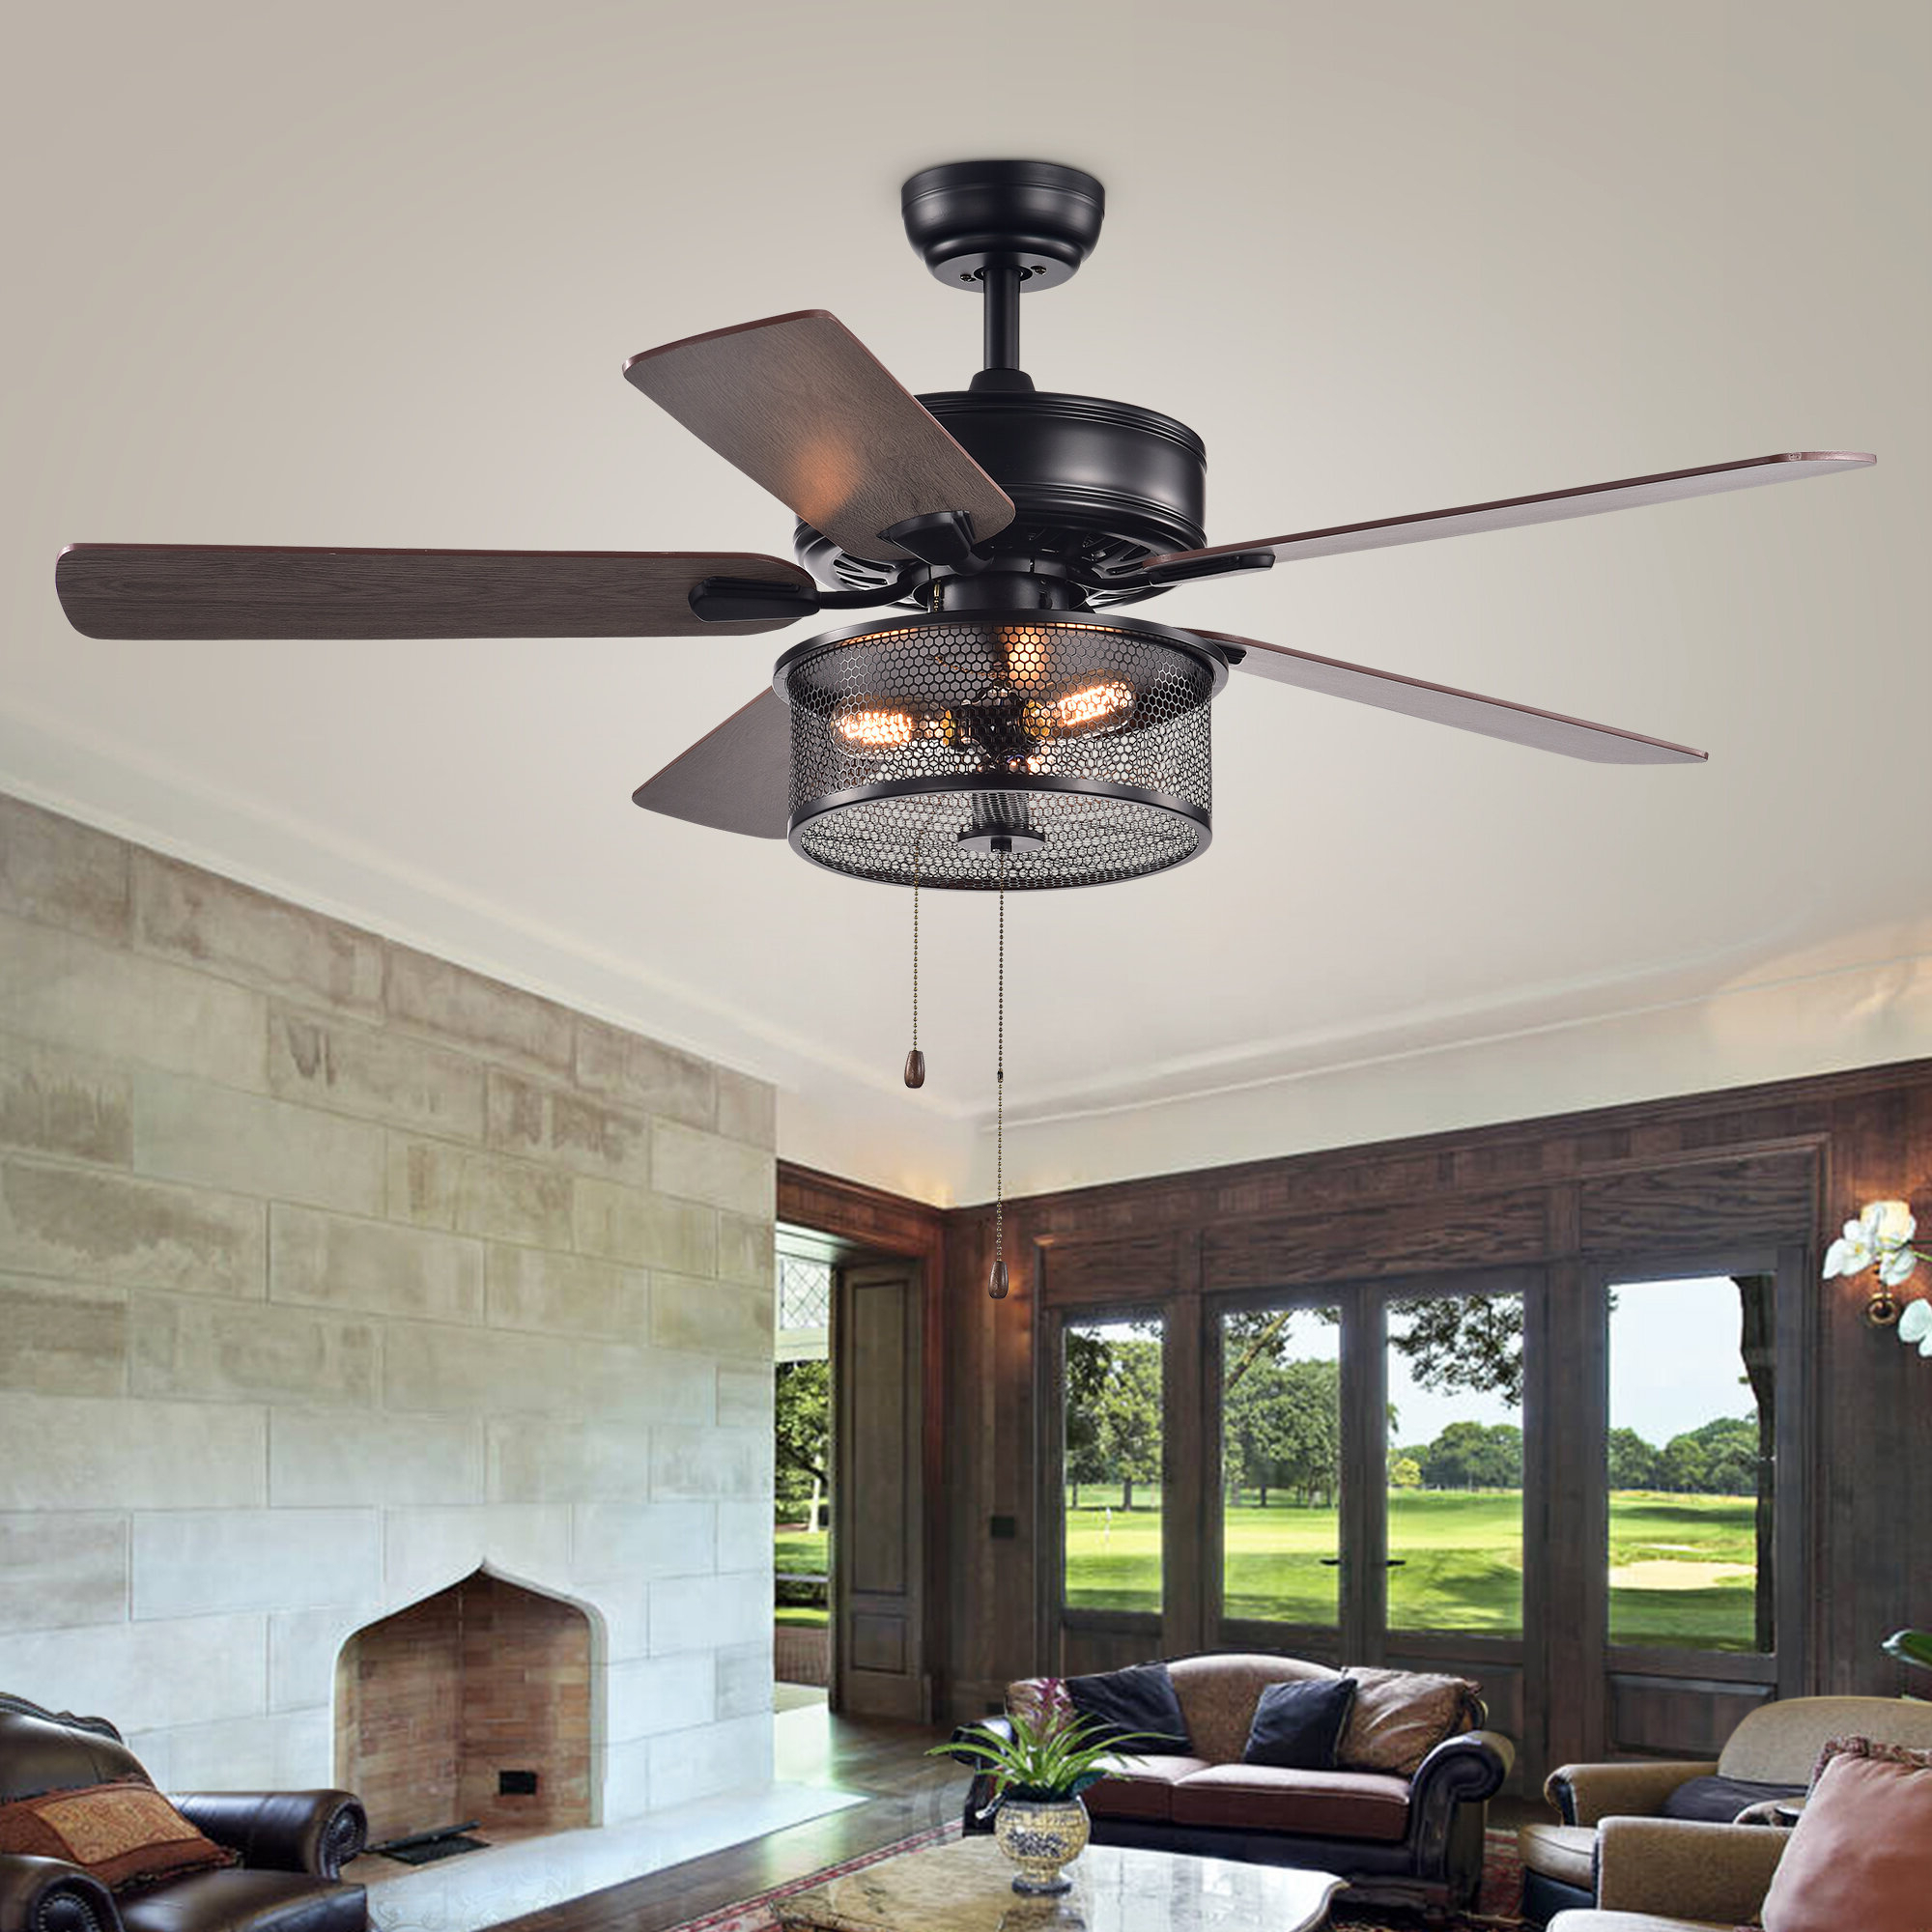 Elyssa 5 Blade Ceiling Fan, Light Kit Included & Reviews Intended For Most Popular Roberts 5 Blade Ceiling Fans (View 18 of 20)